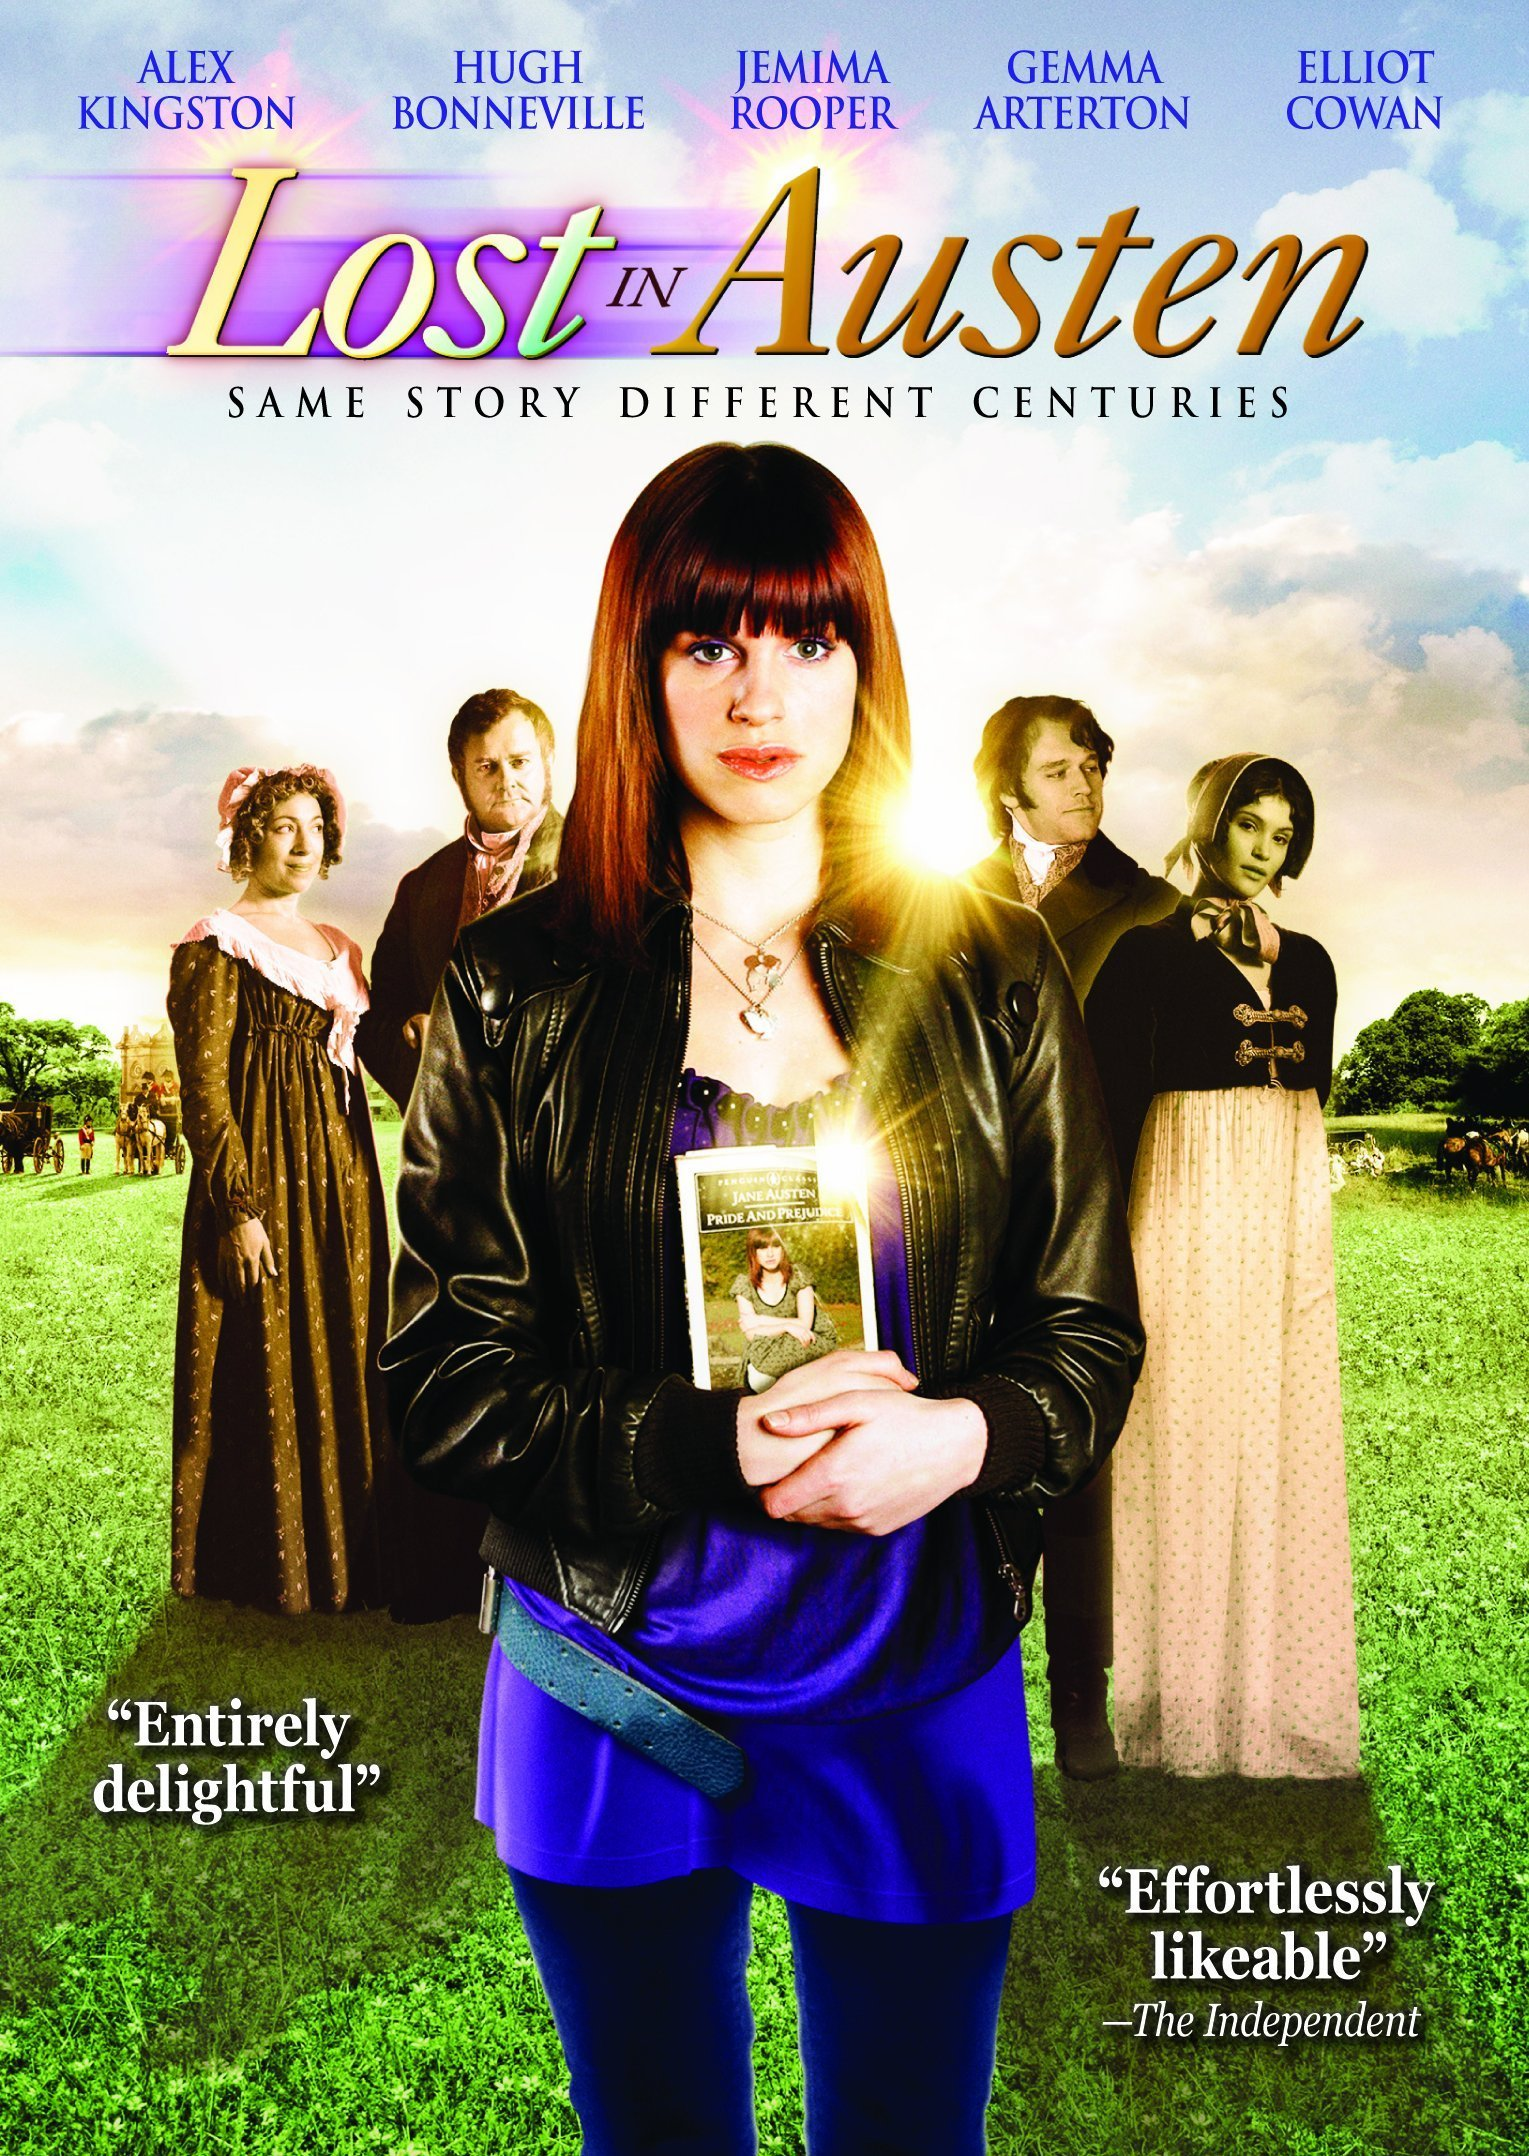 Lost in Austen by Image Entertainment